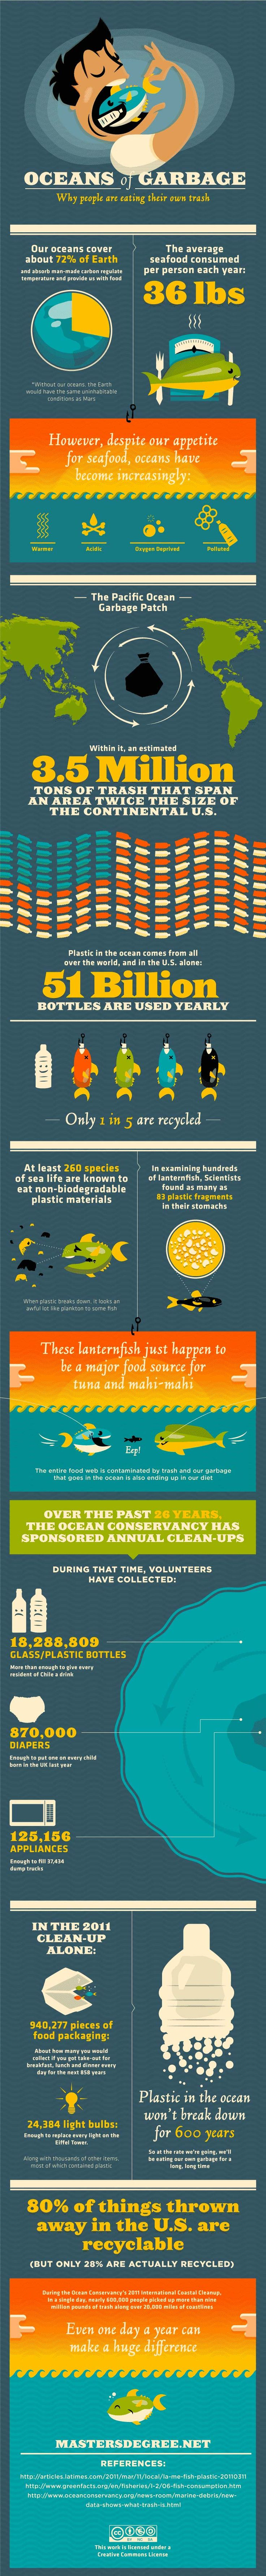 Why are people eating their own trash? Great Pacific Ocean Garbage Patch Infographic